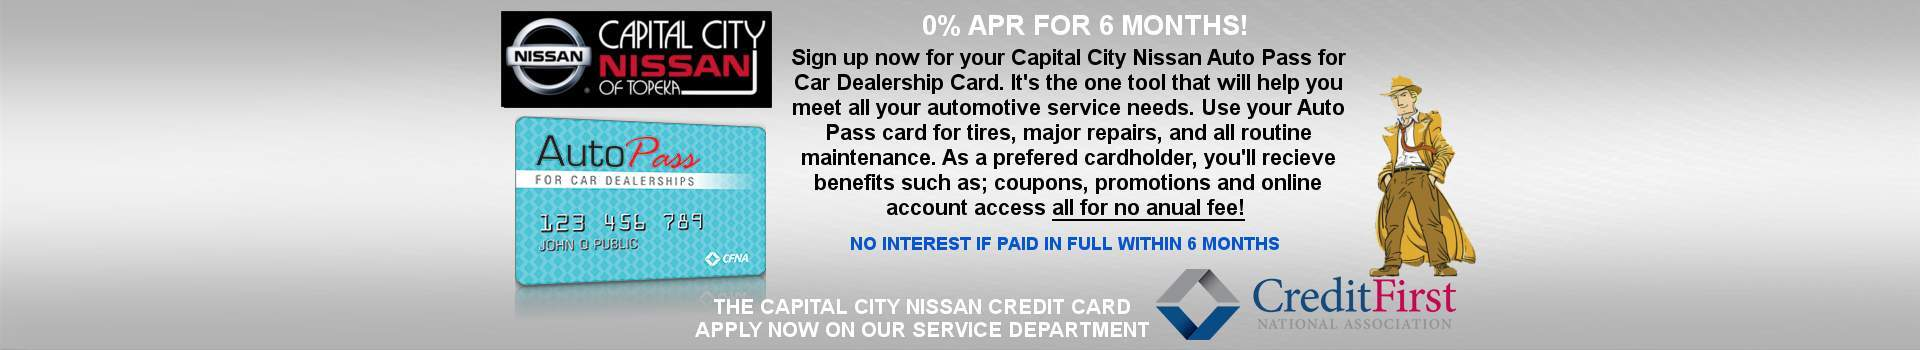 Welcome to Capital City Nissan of Topeka